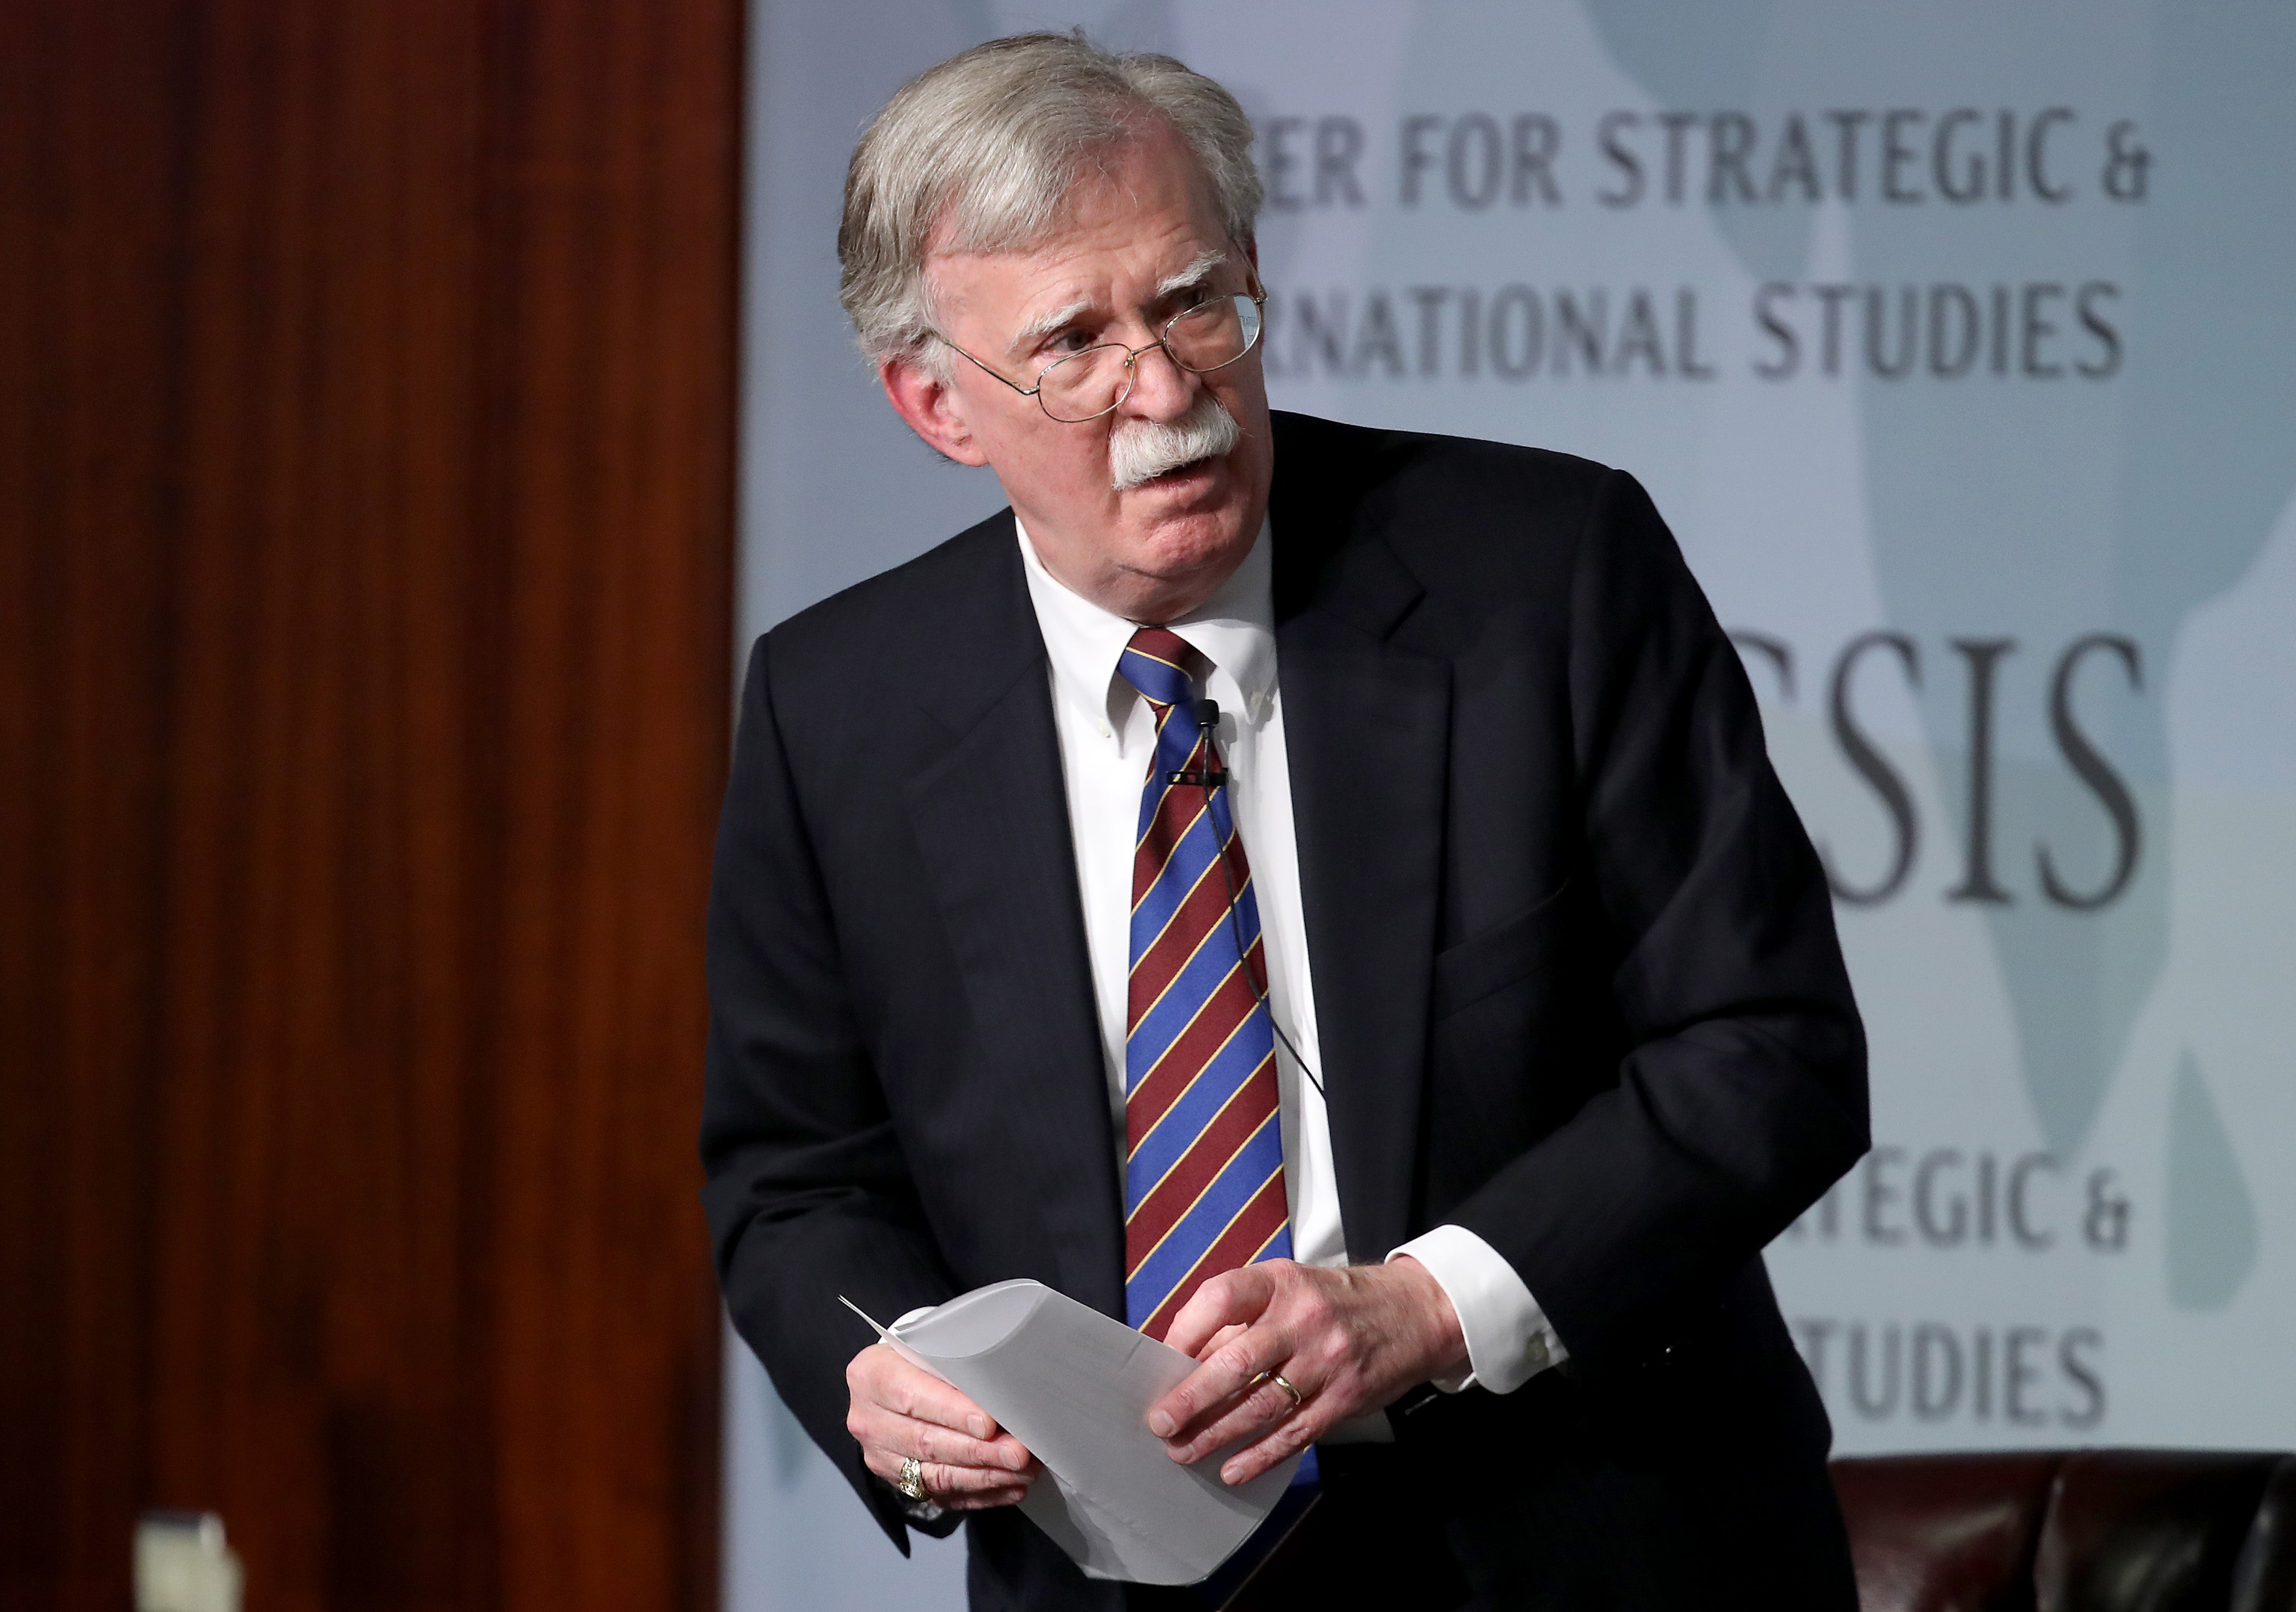 John Bolton appears at the Center for Strategic and International Studies